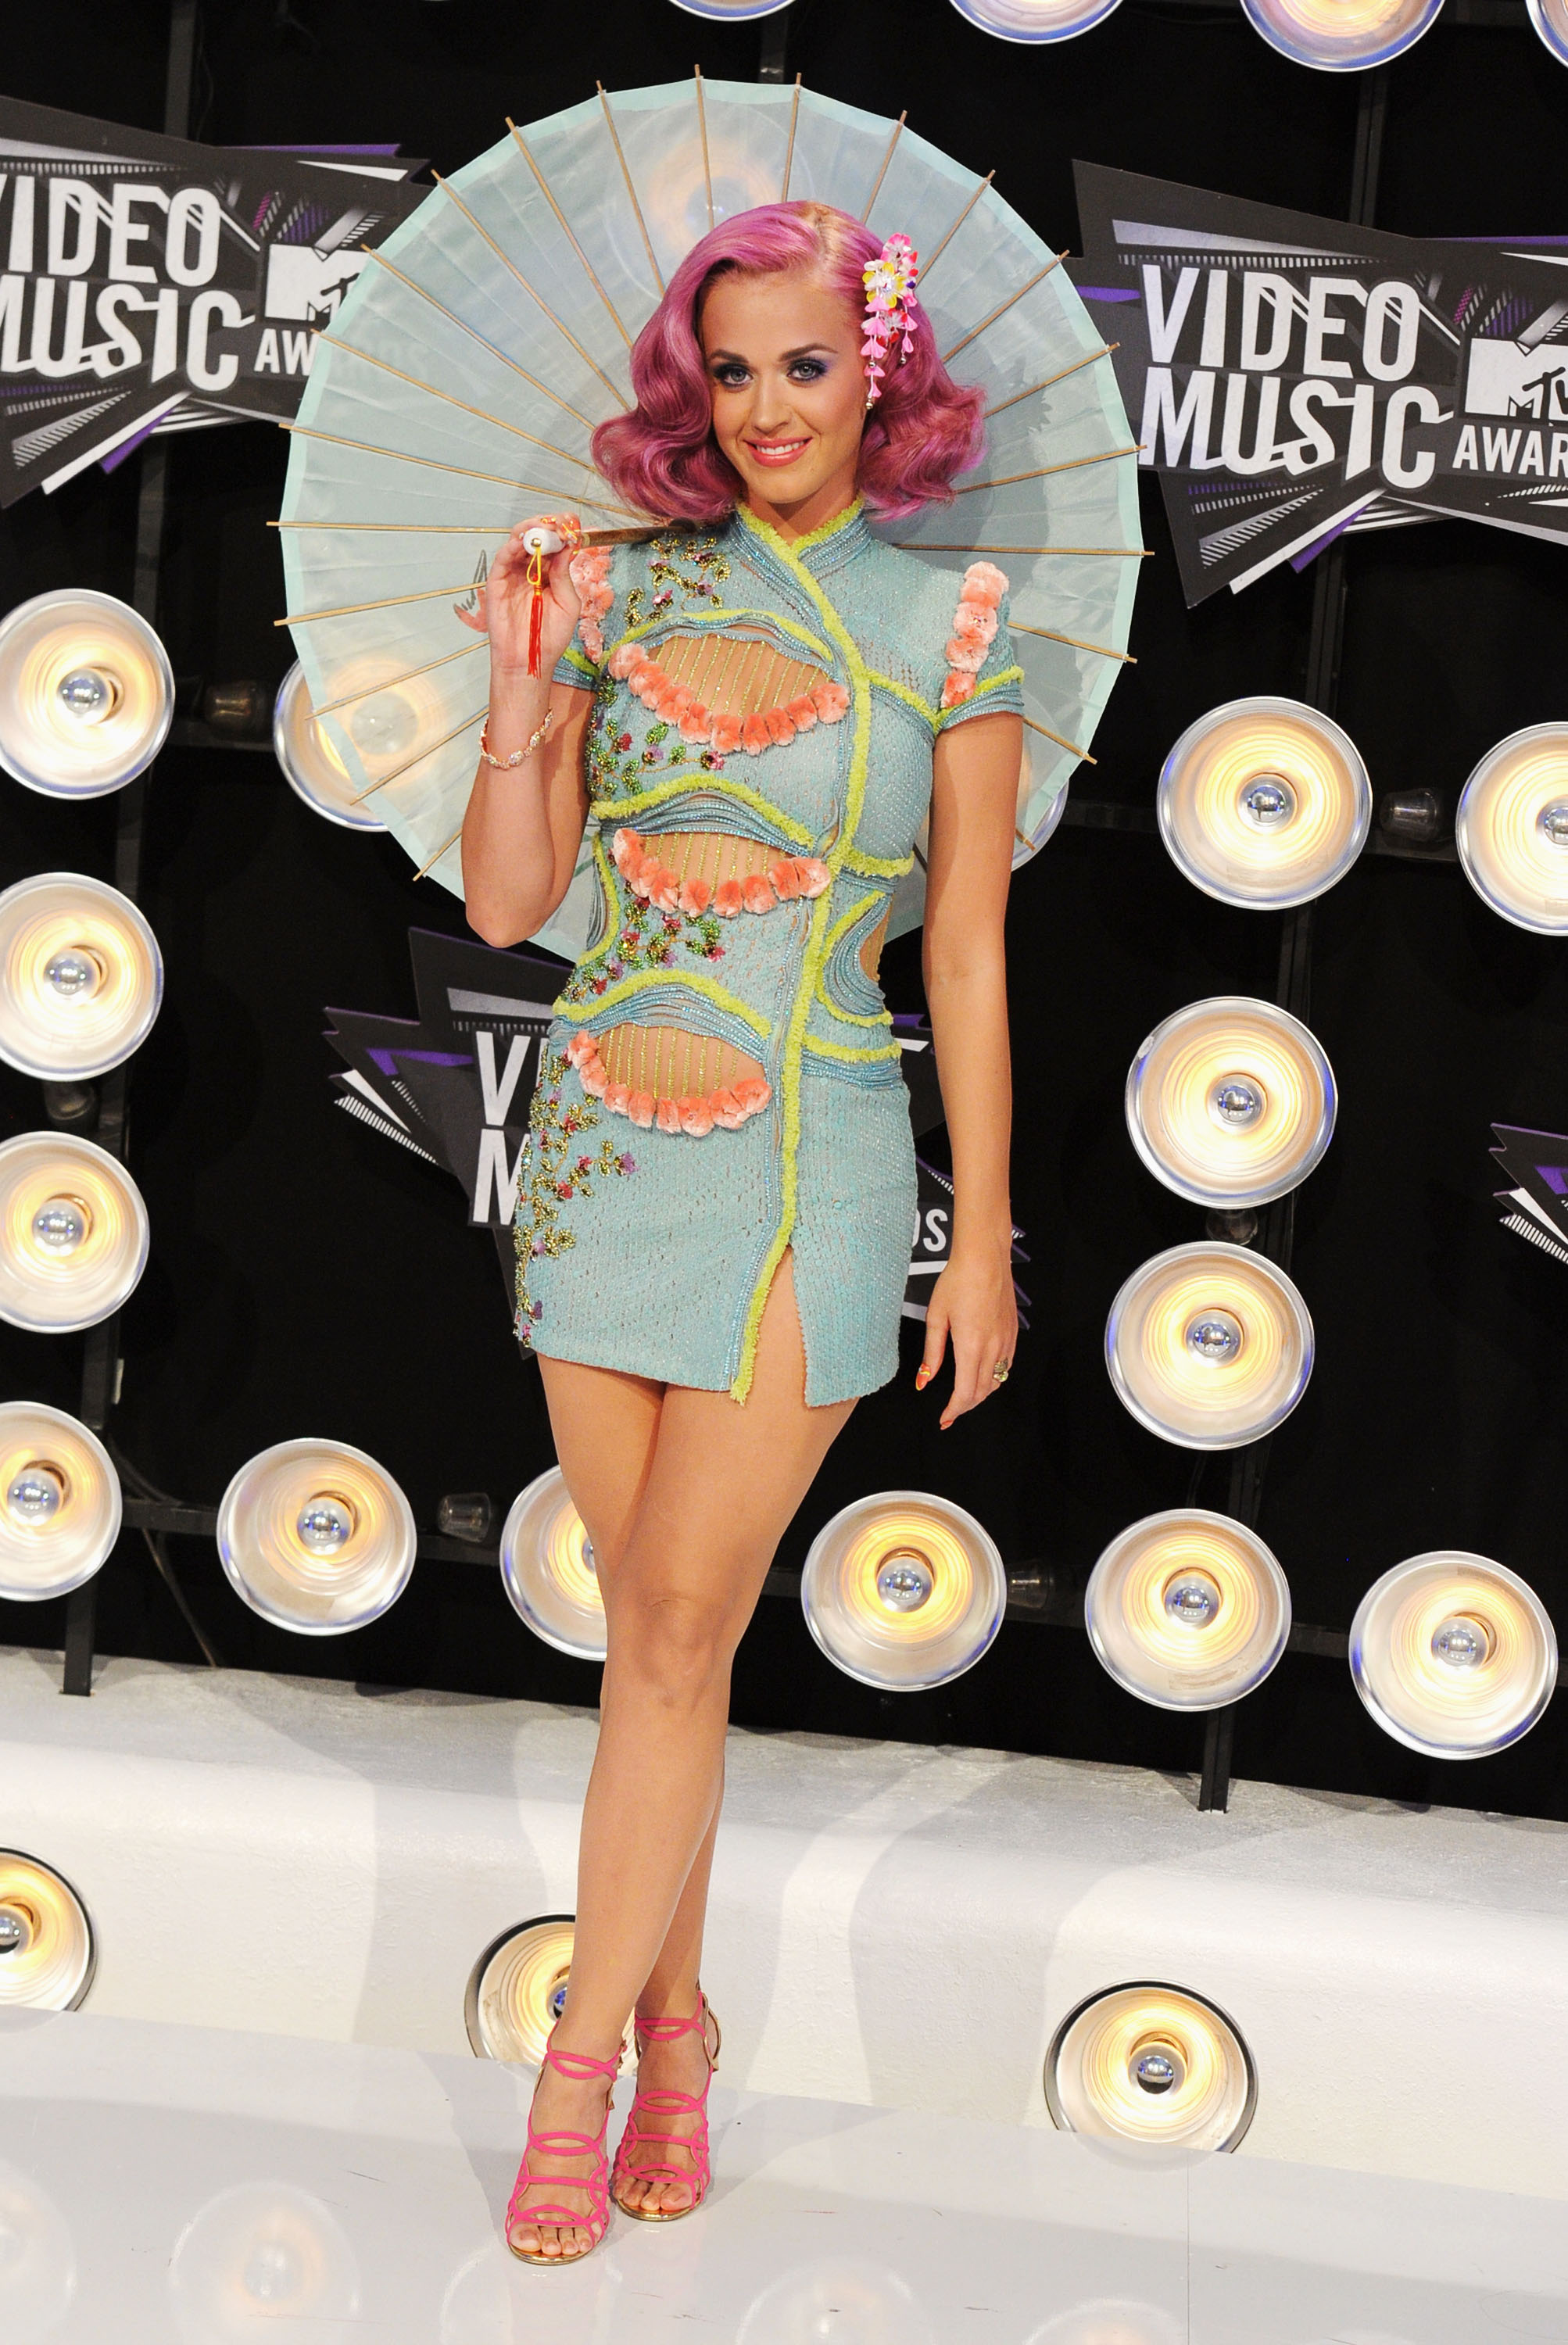 LOS ANGELES, CA - AUGUST 28:  Singer Katy Perry arrives at the The 28th Annual MTV Video Music Awards at Nokia Theatre L.A. LIVE on August 28, 2011 in Los Angeles, California.  (Photo by Steve Granitz/WireImage)